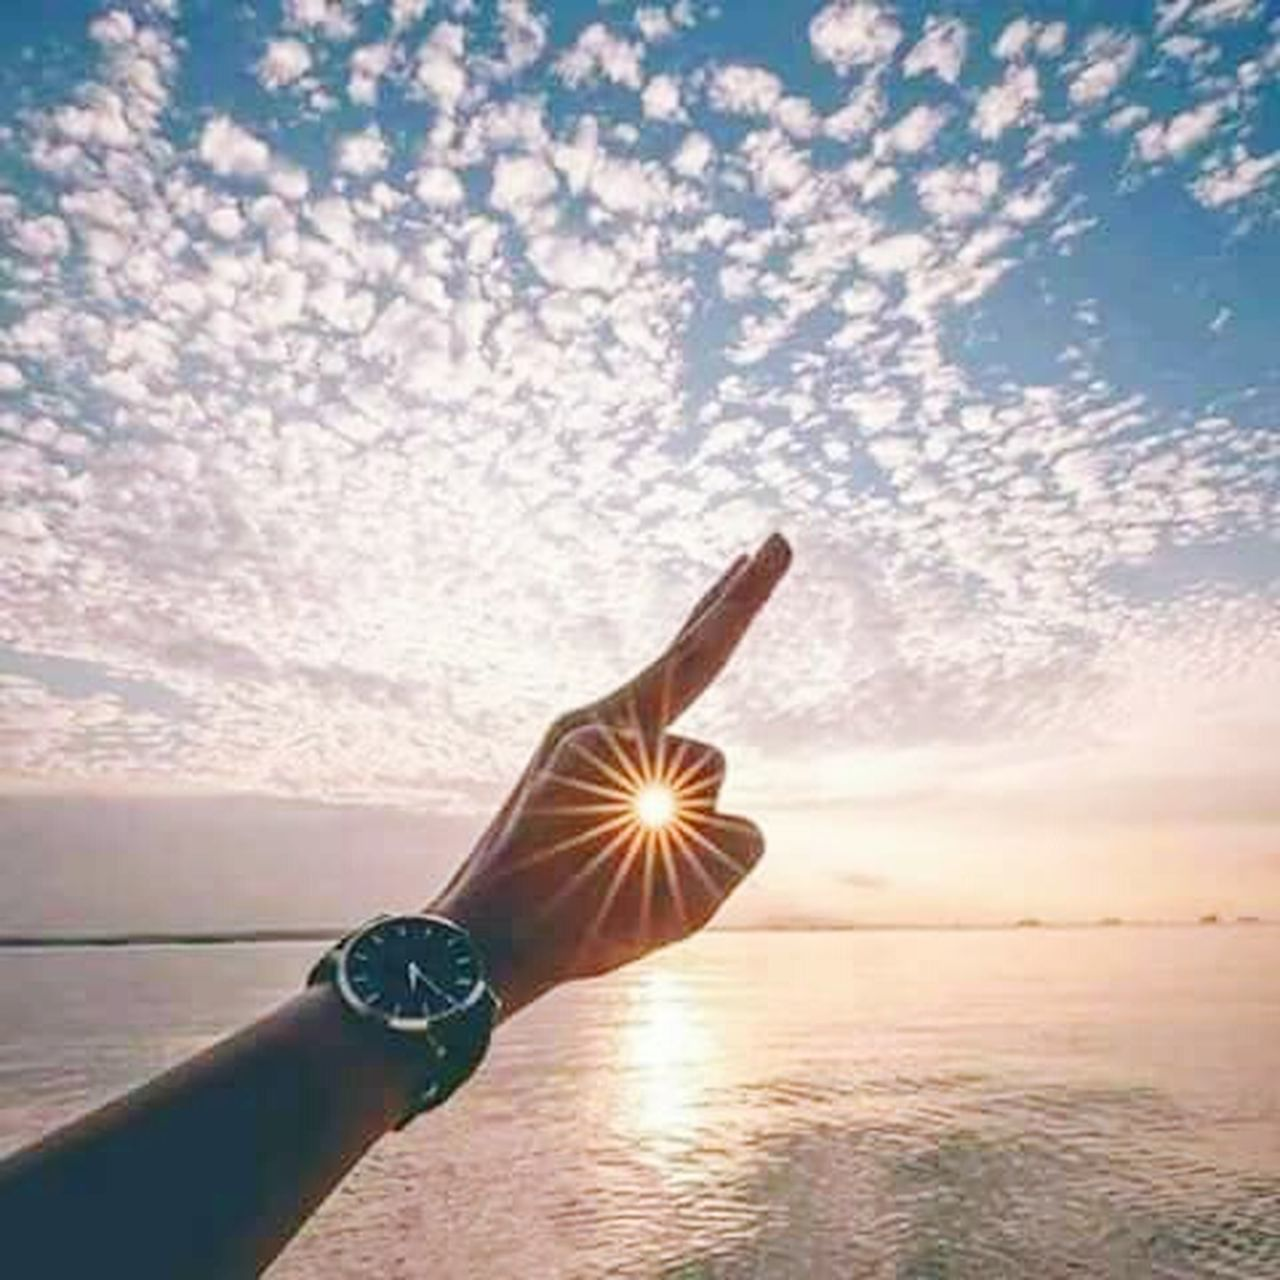 human hand, human body part, sunset, sea, sky, sun, one person, holding, beach, tranquil scene, cloud - sky, people, only women, horizon over water, adult, nature, outdoors, one woman only, adults only, water, beauty in nature, close-up, day